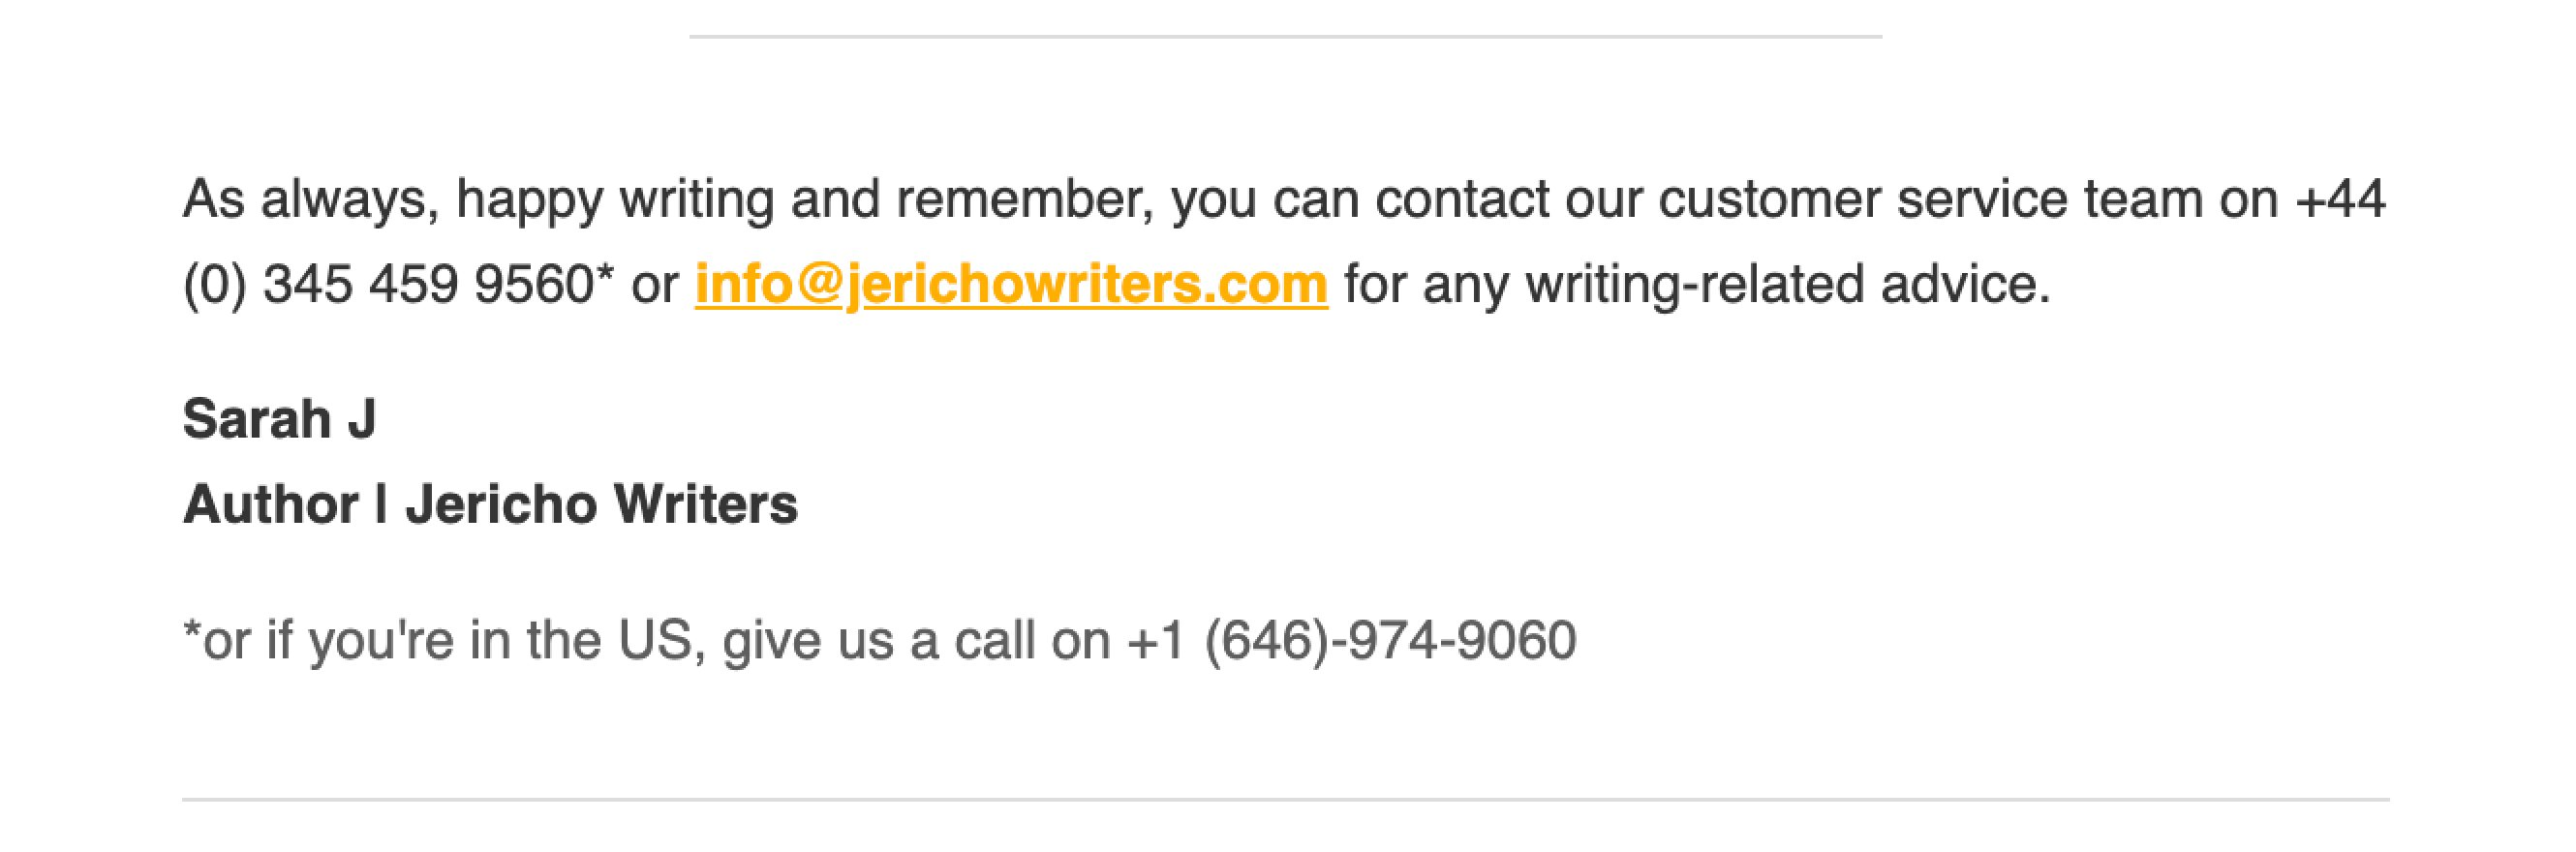 Jericho Writers email sign-off example contact information